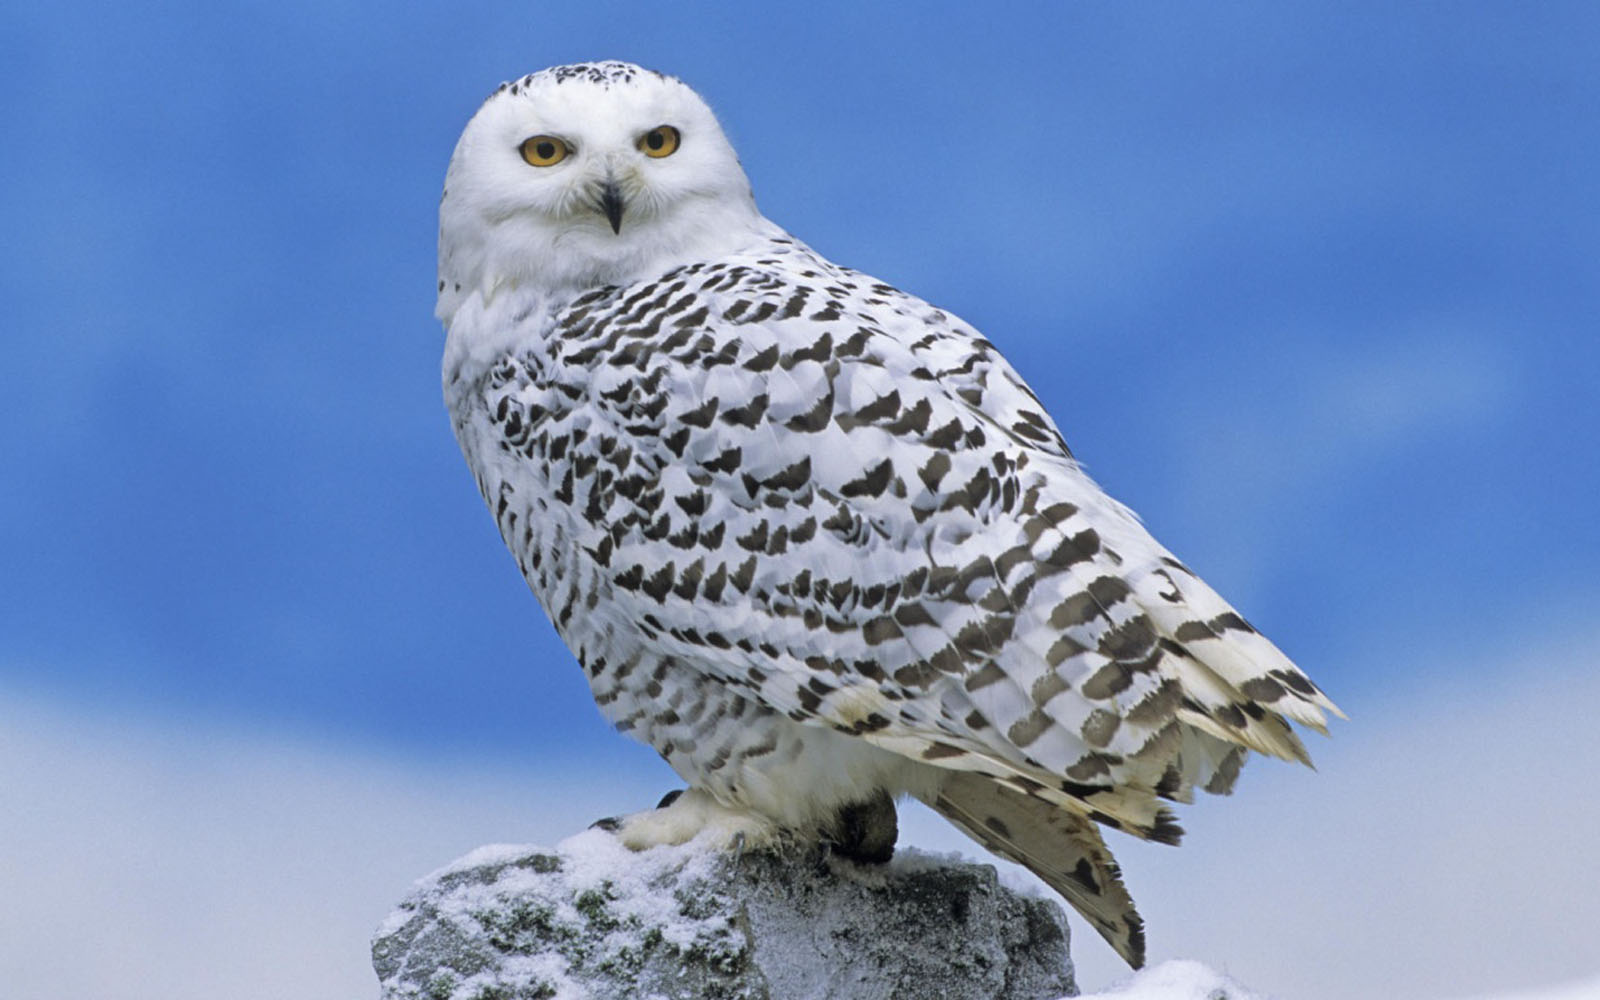 Free download White Owl Wallpapers 1600x1000 for your ...